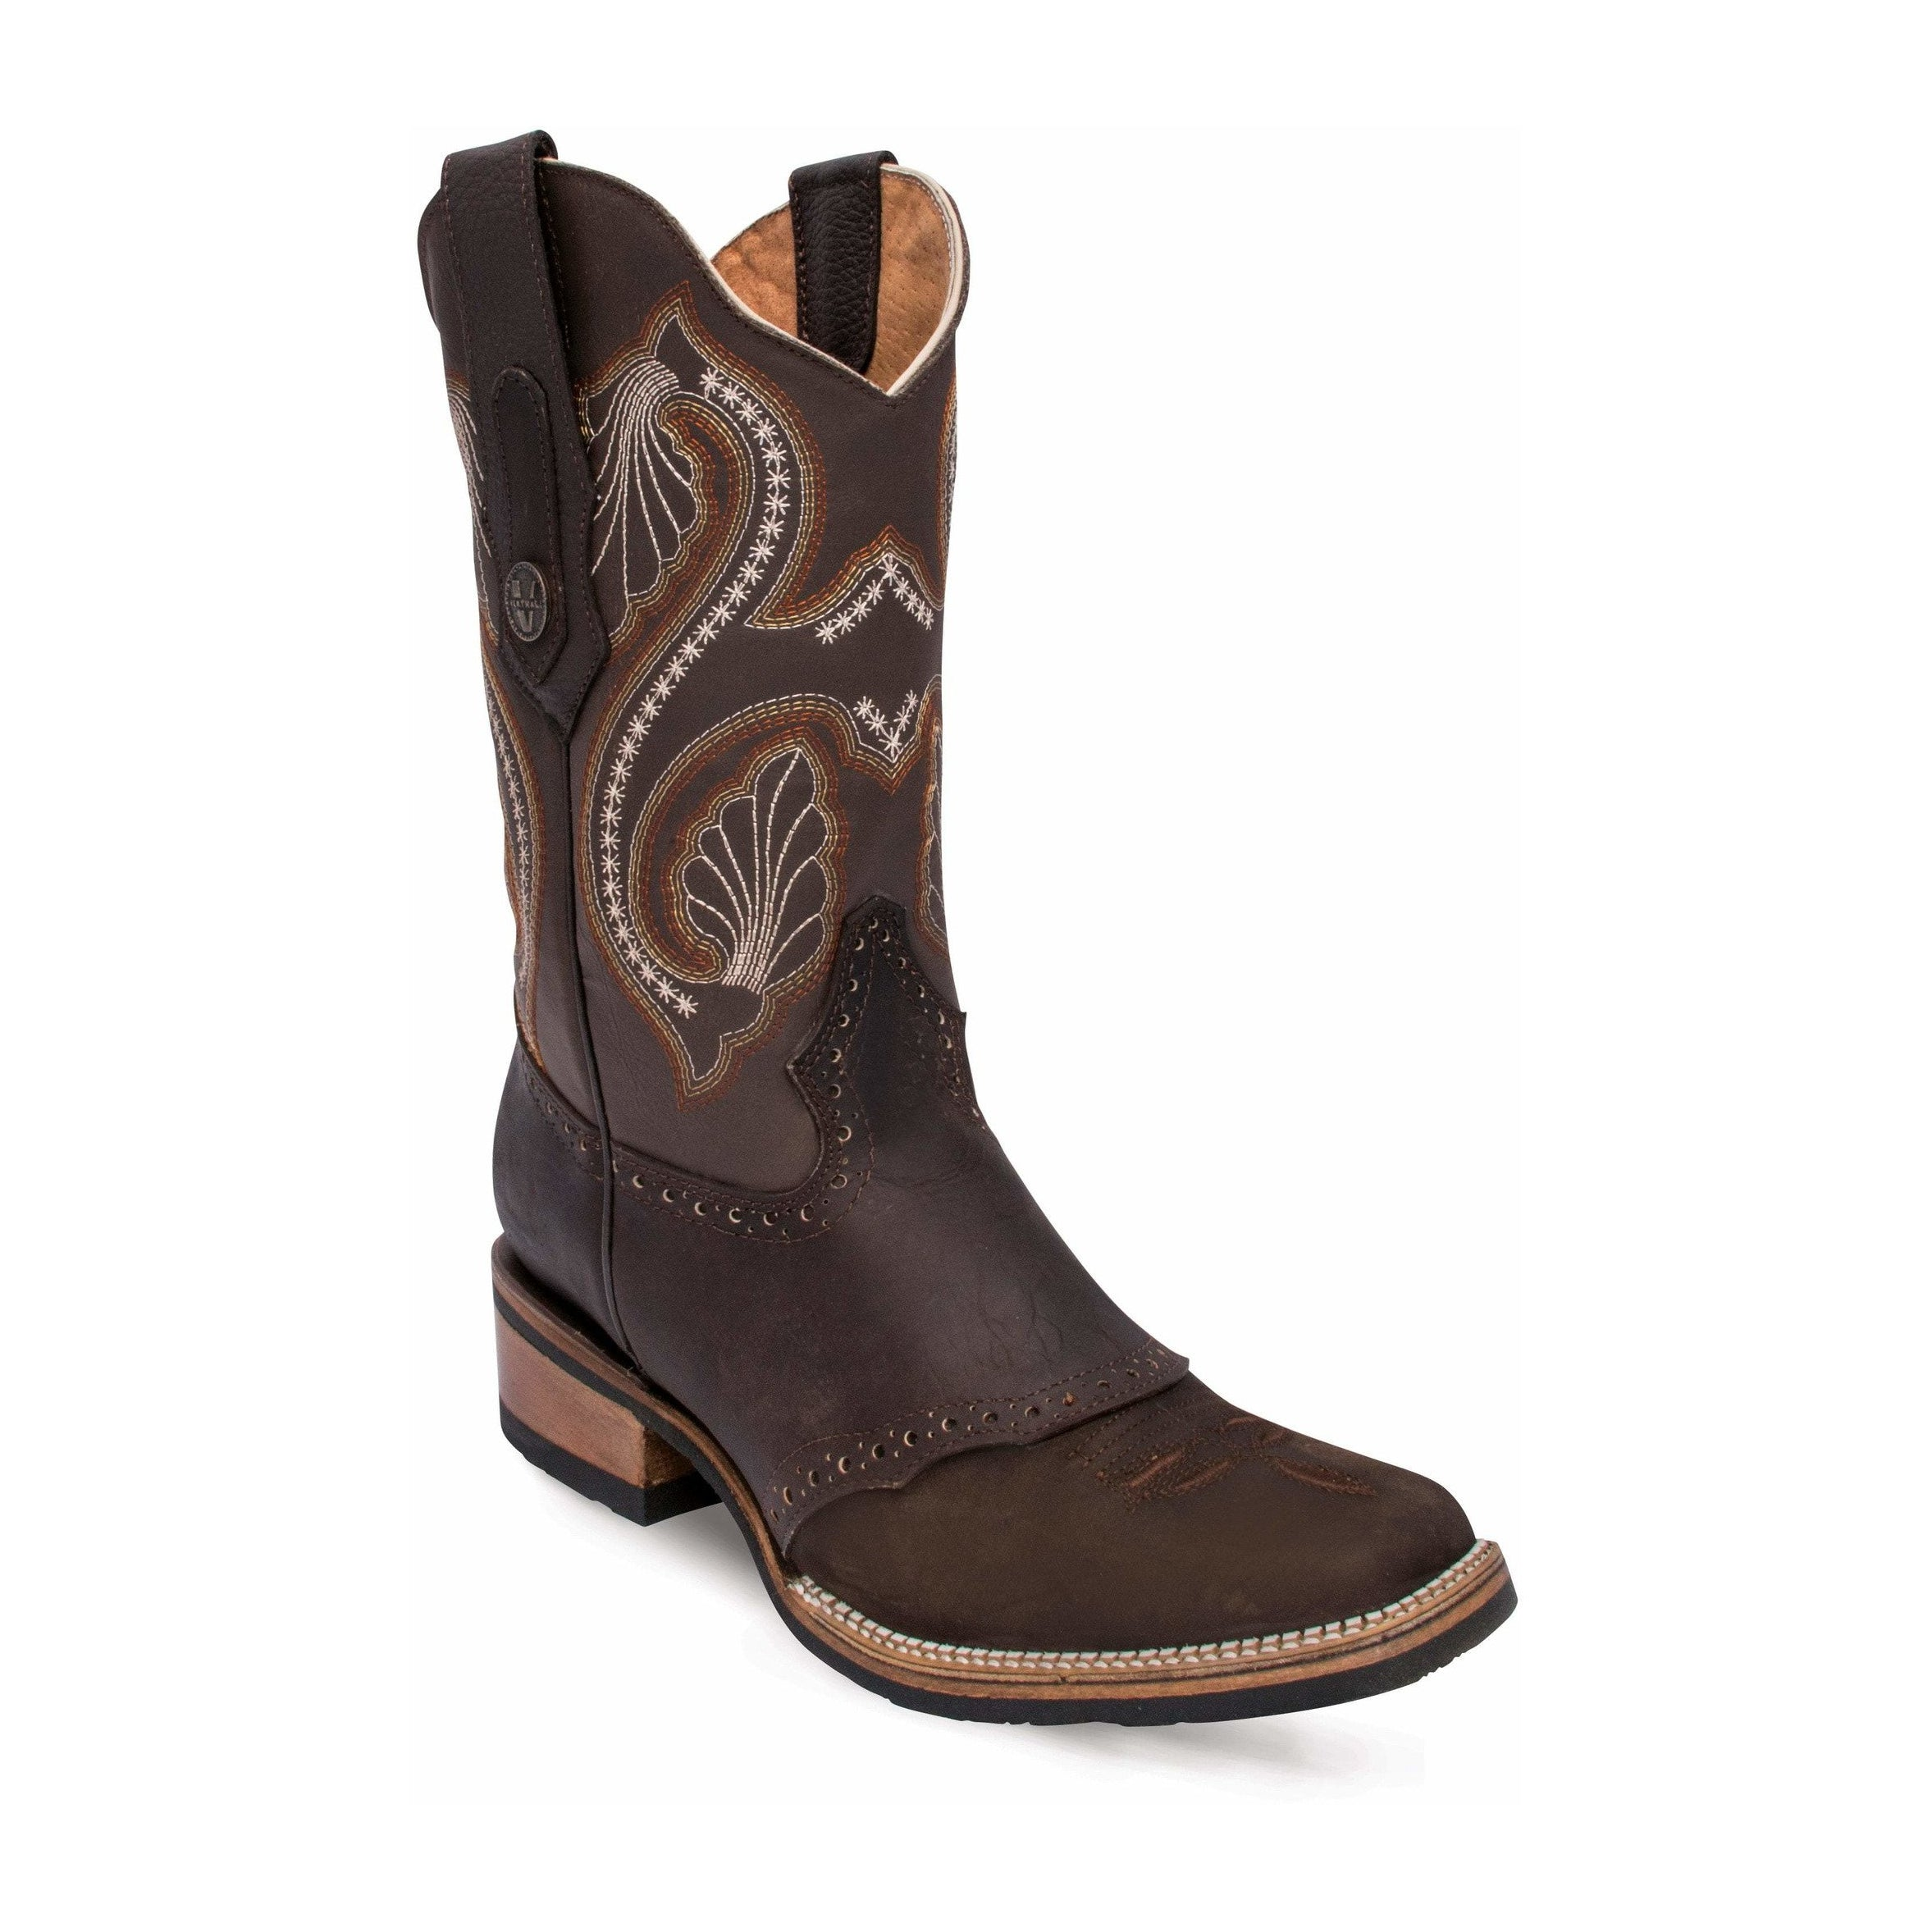 VE192 Bota Rodeo Dama con Antifaz Verthali Cafe